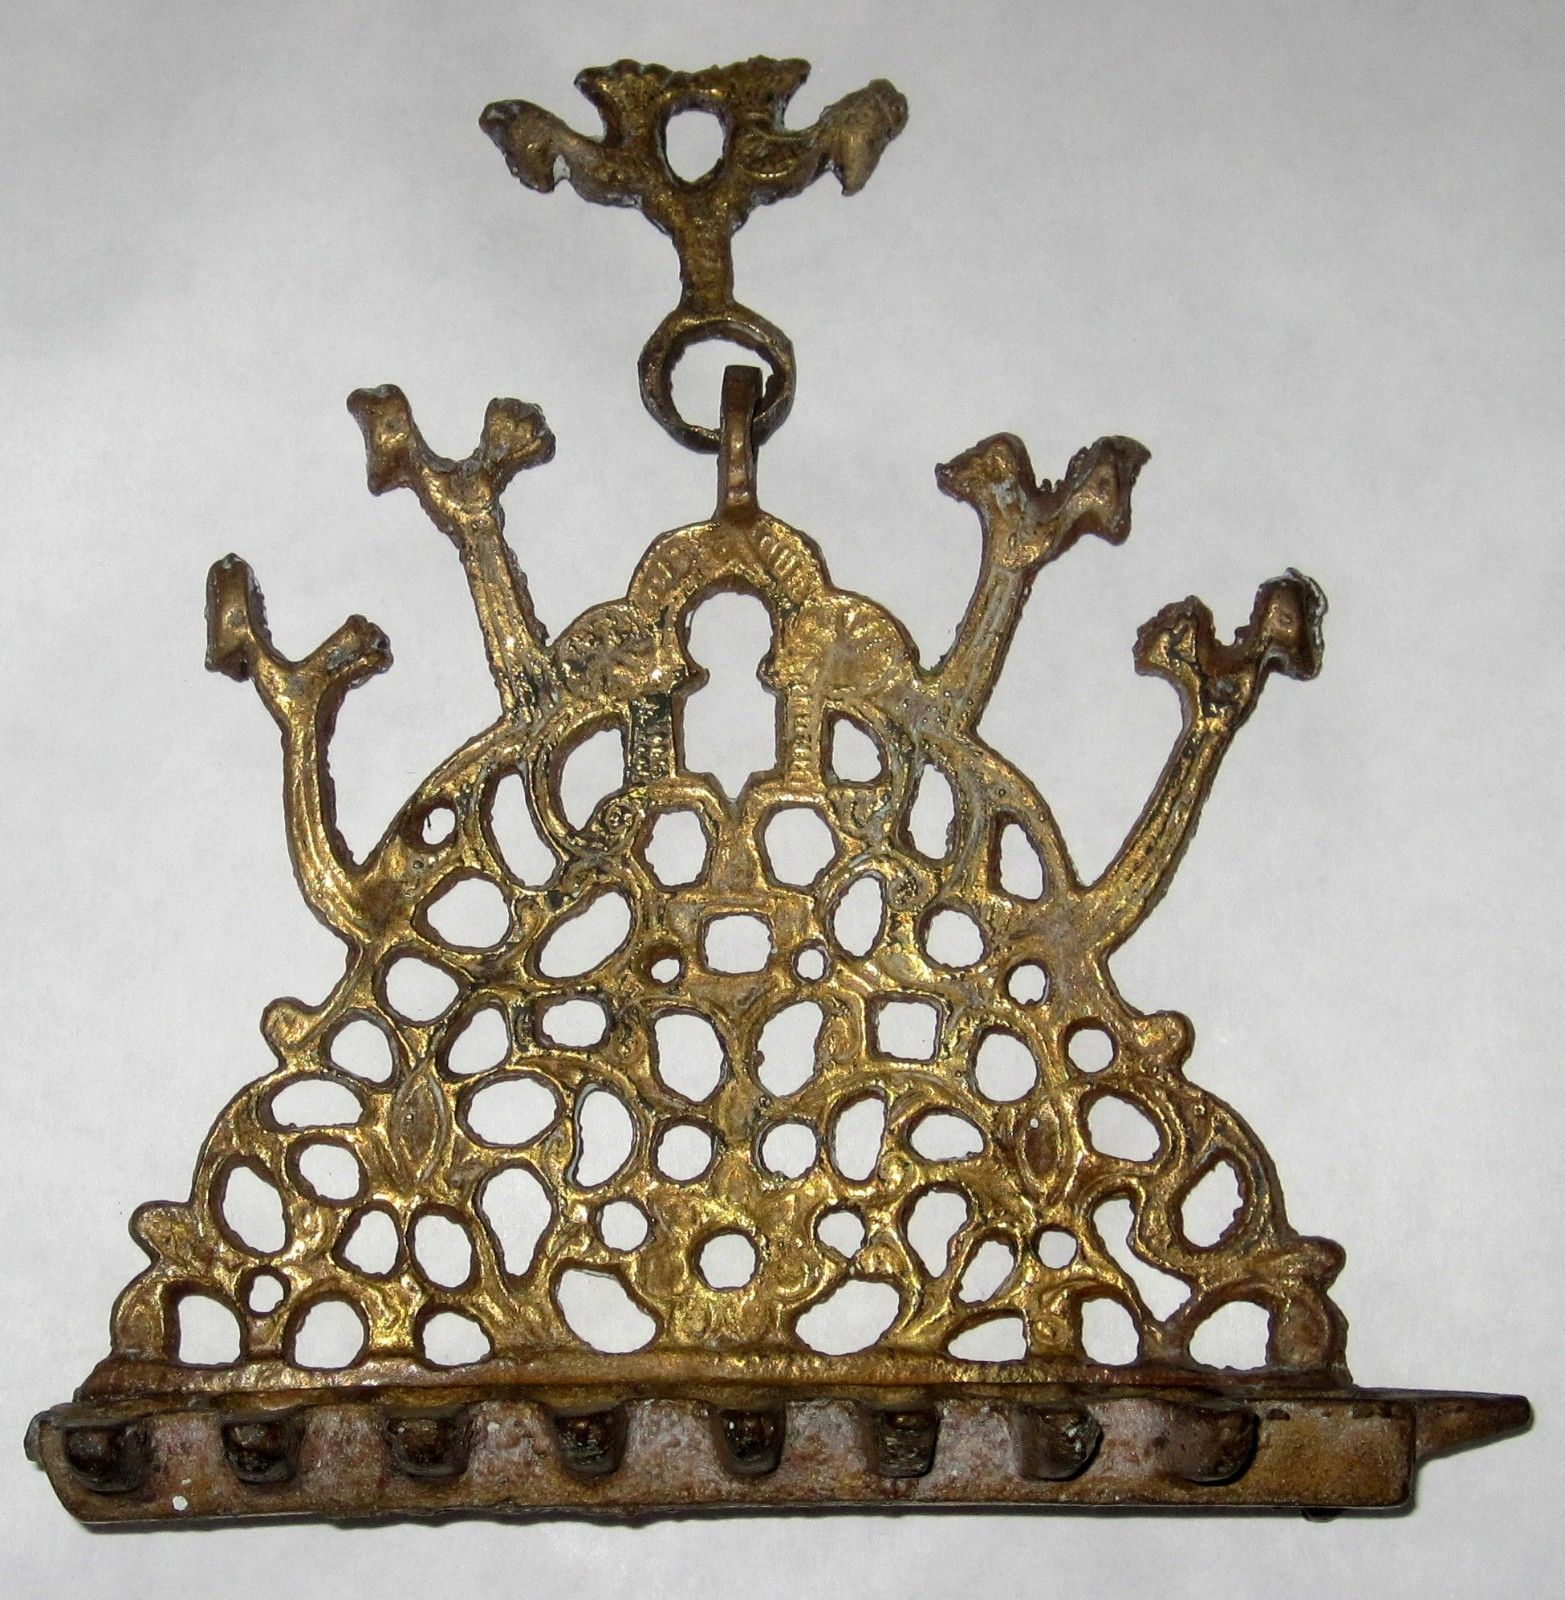 Antique Moroccan Judaica Hanukkah Oil Menorah Engraved Bird Decorated Bronze